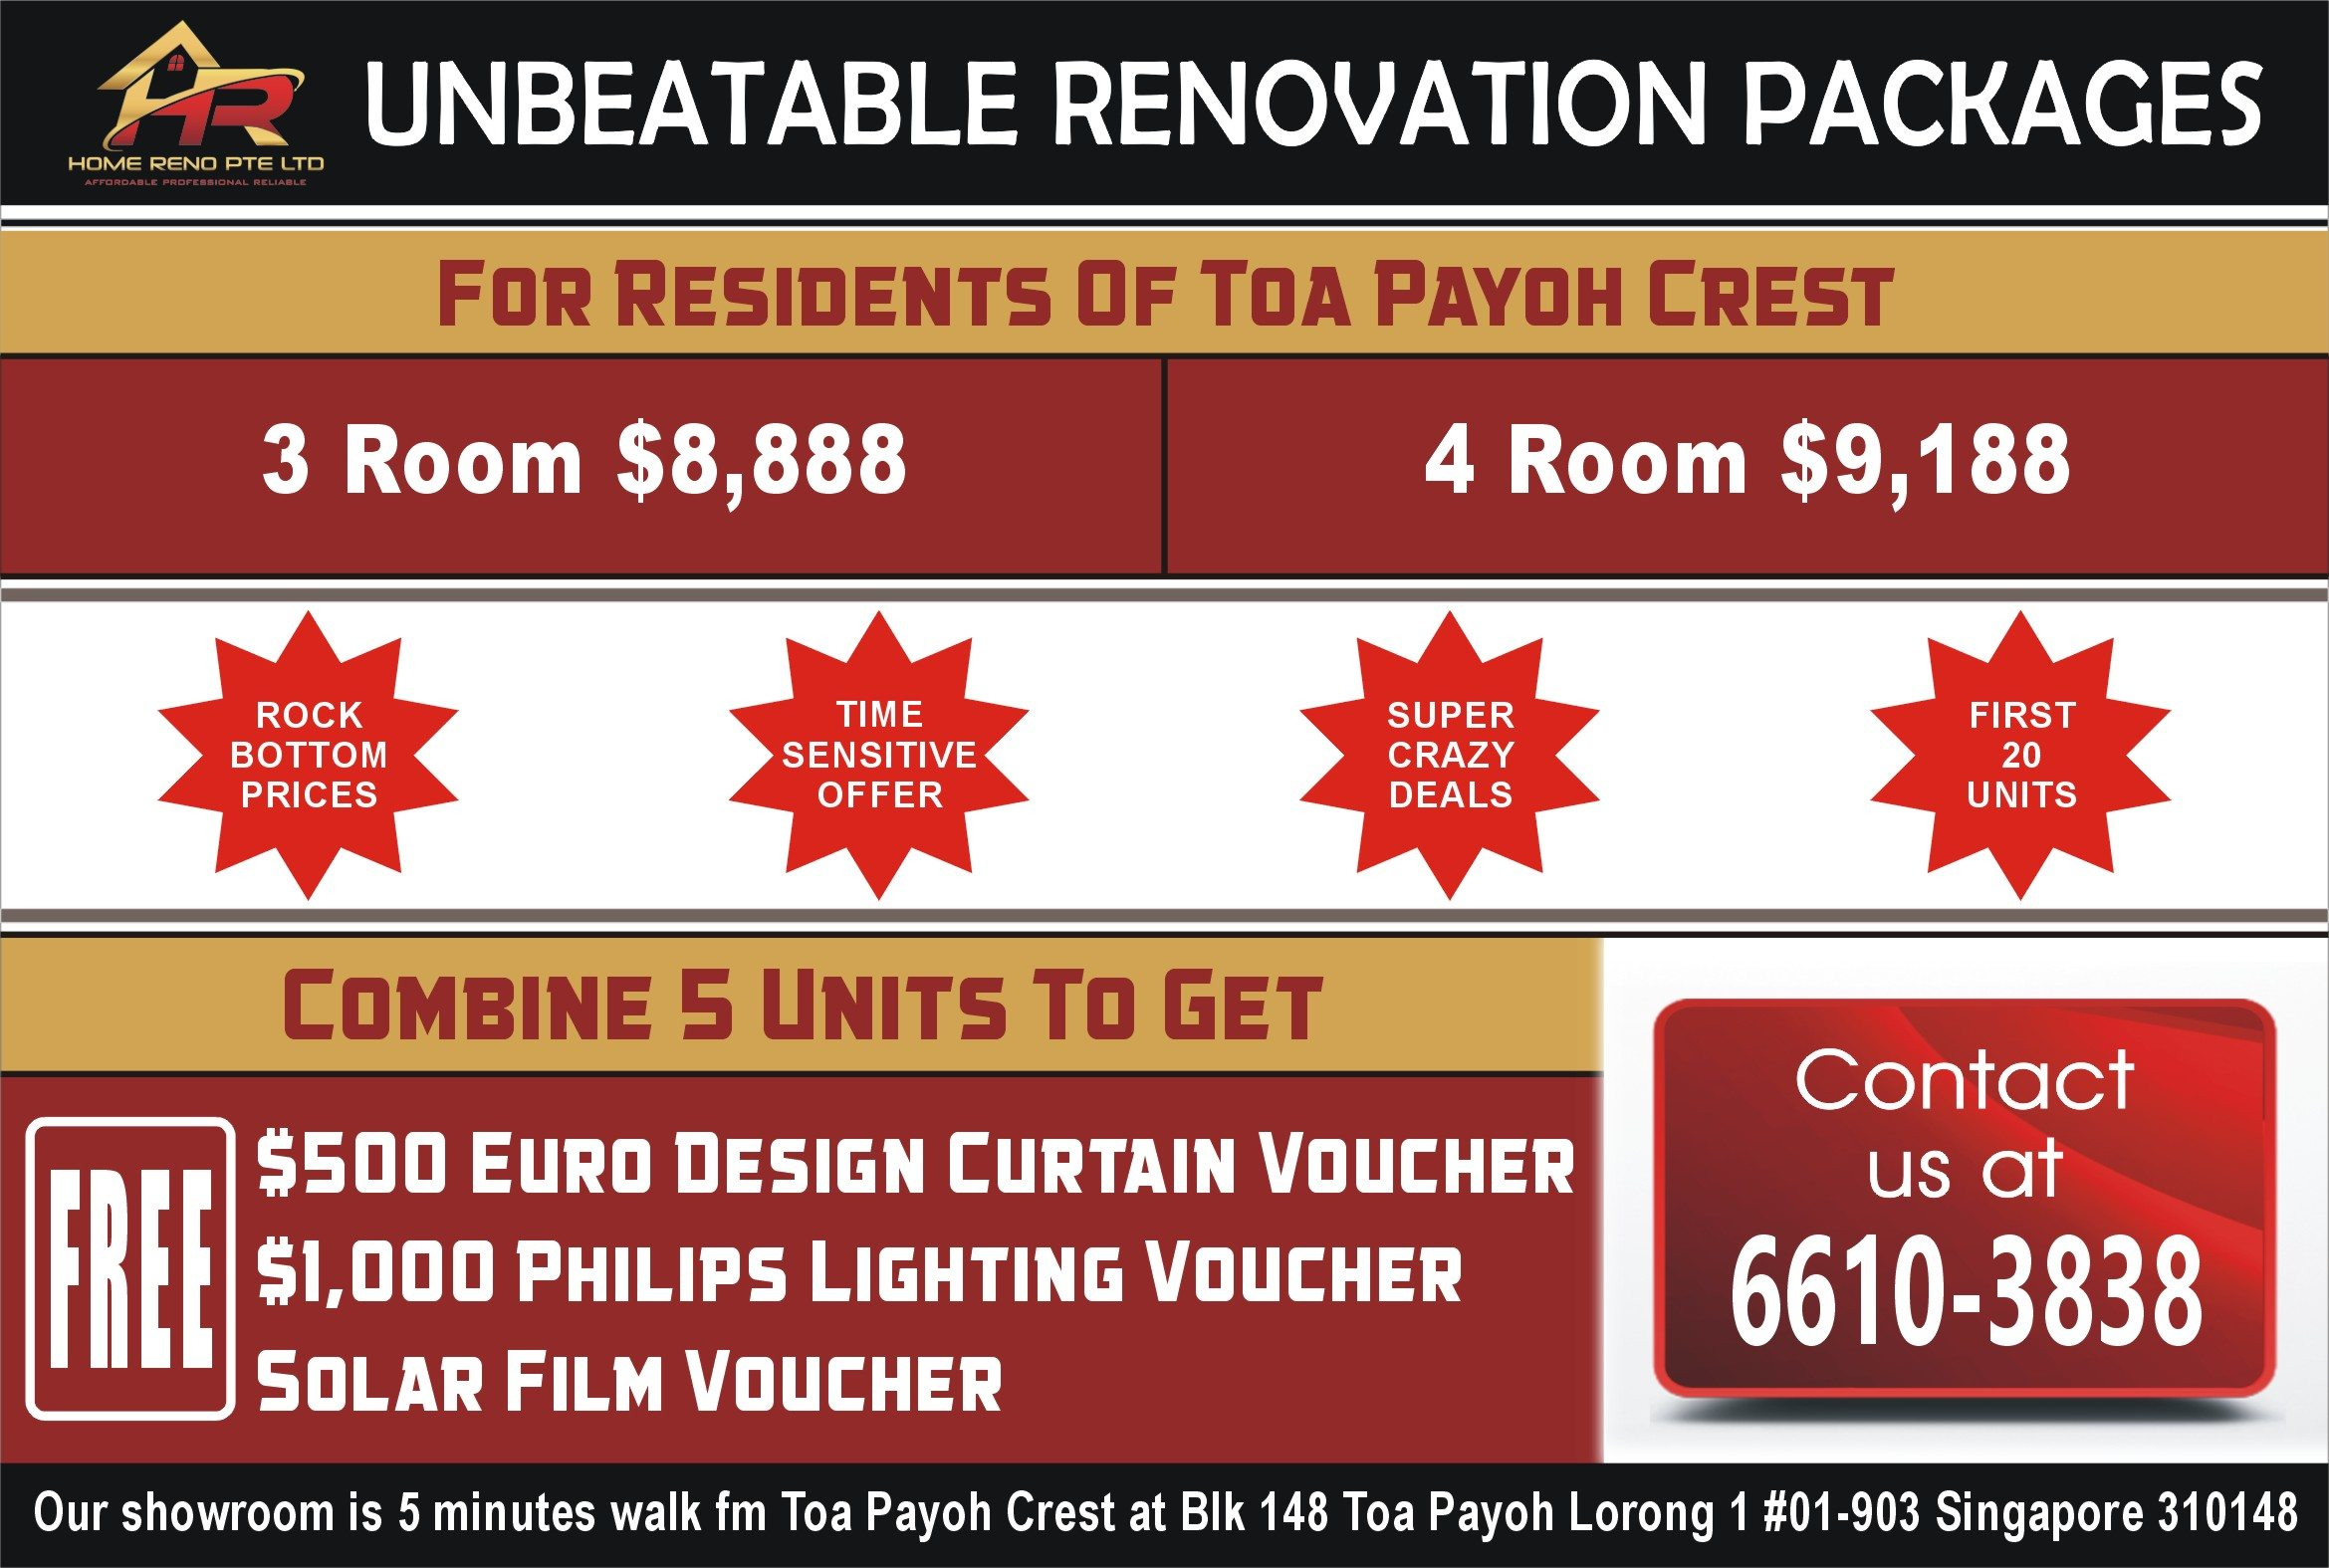 Unbeatable reno package for Toa Payoh Crest